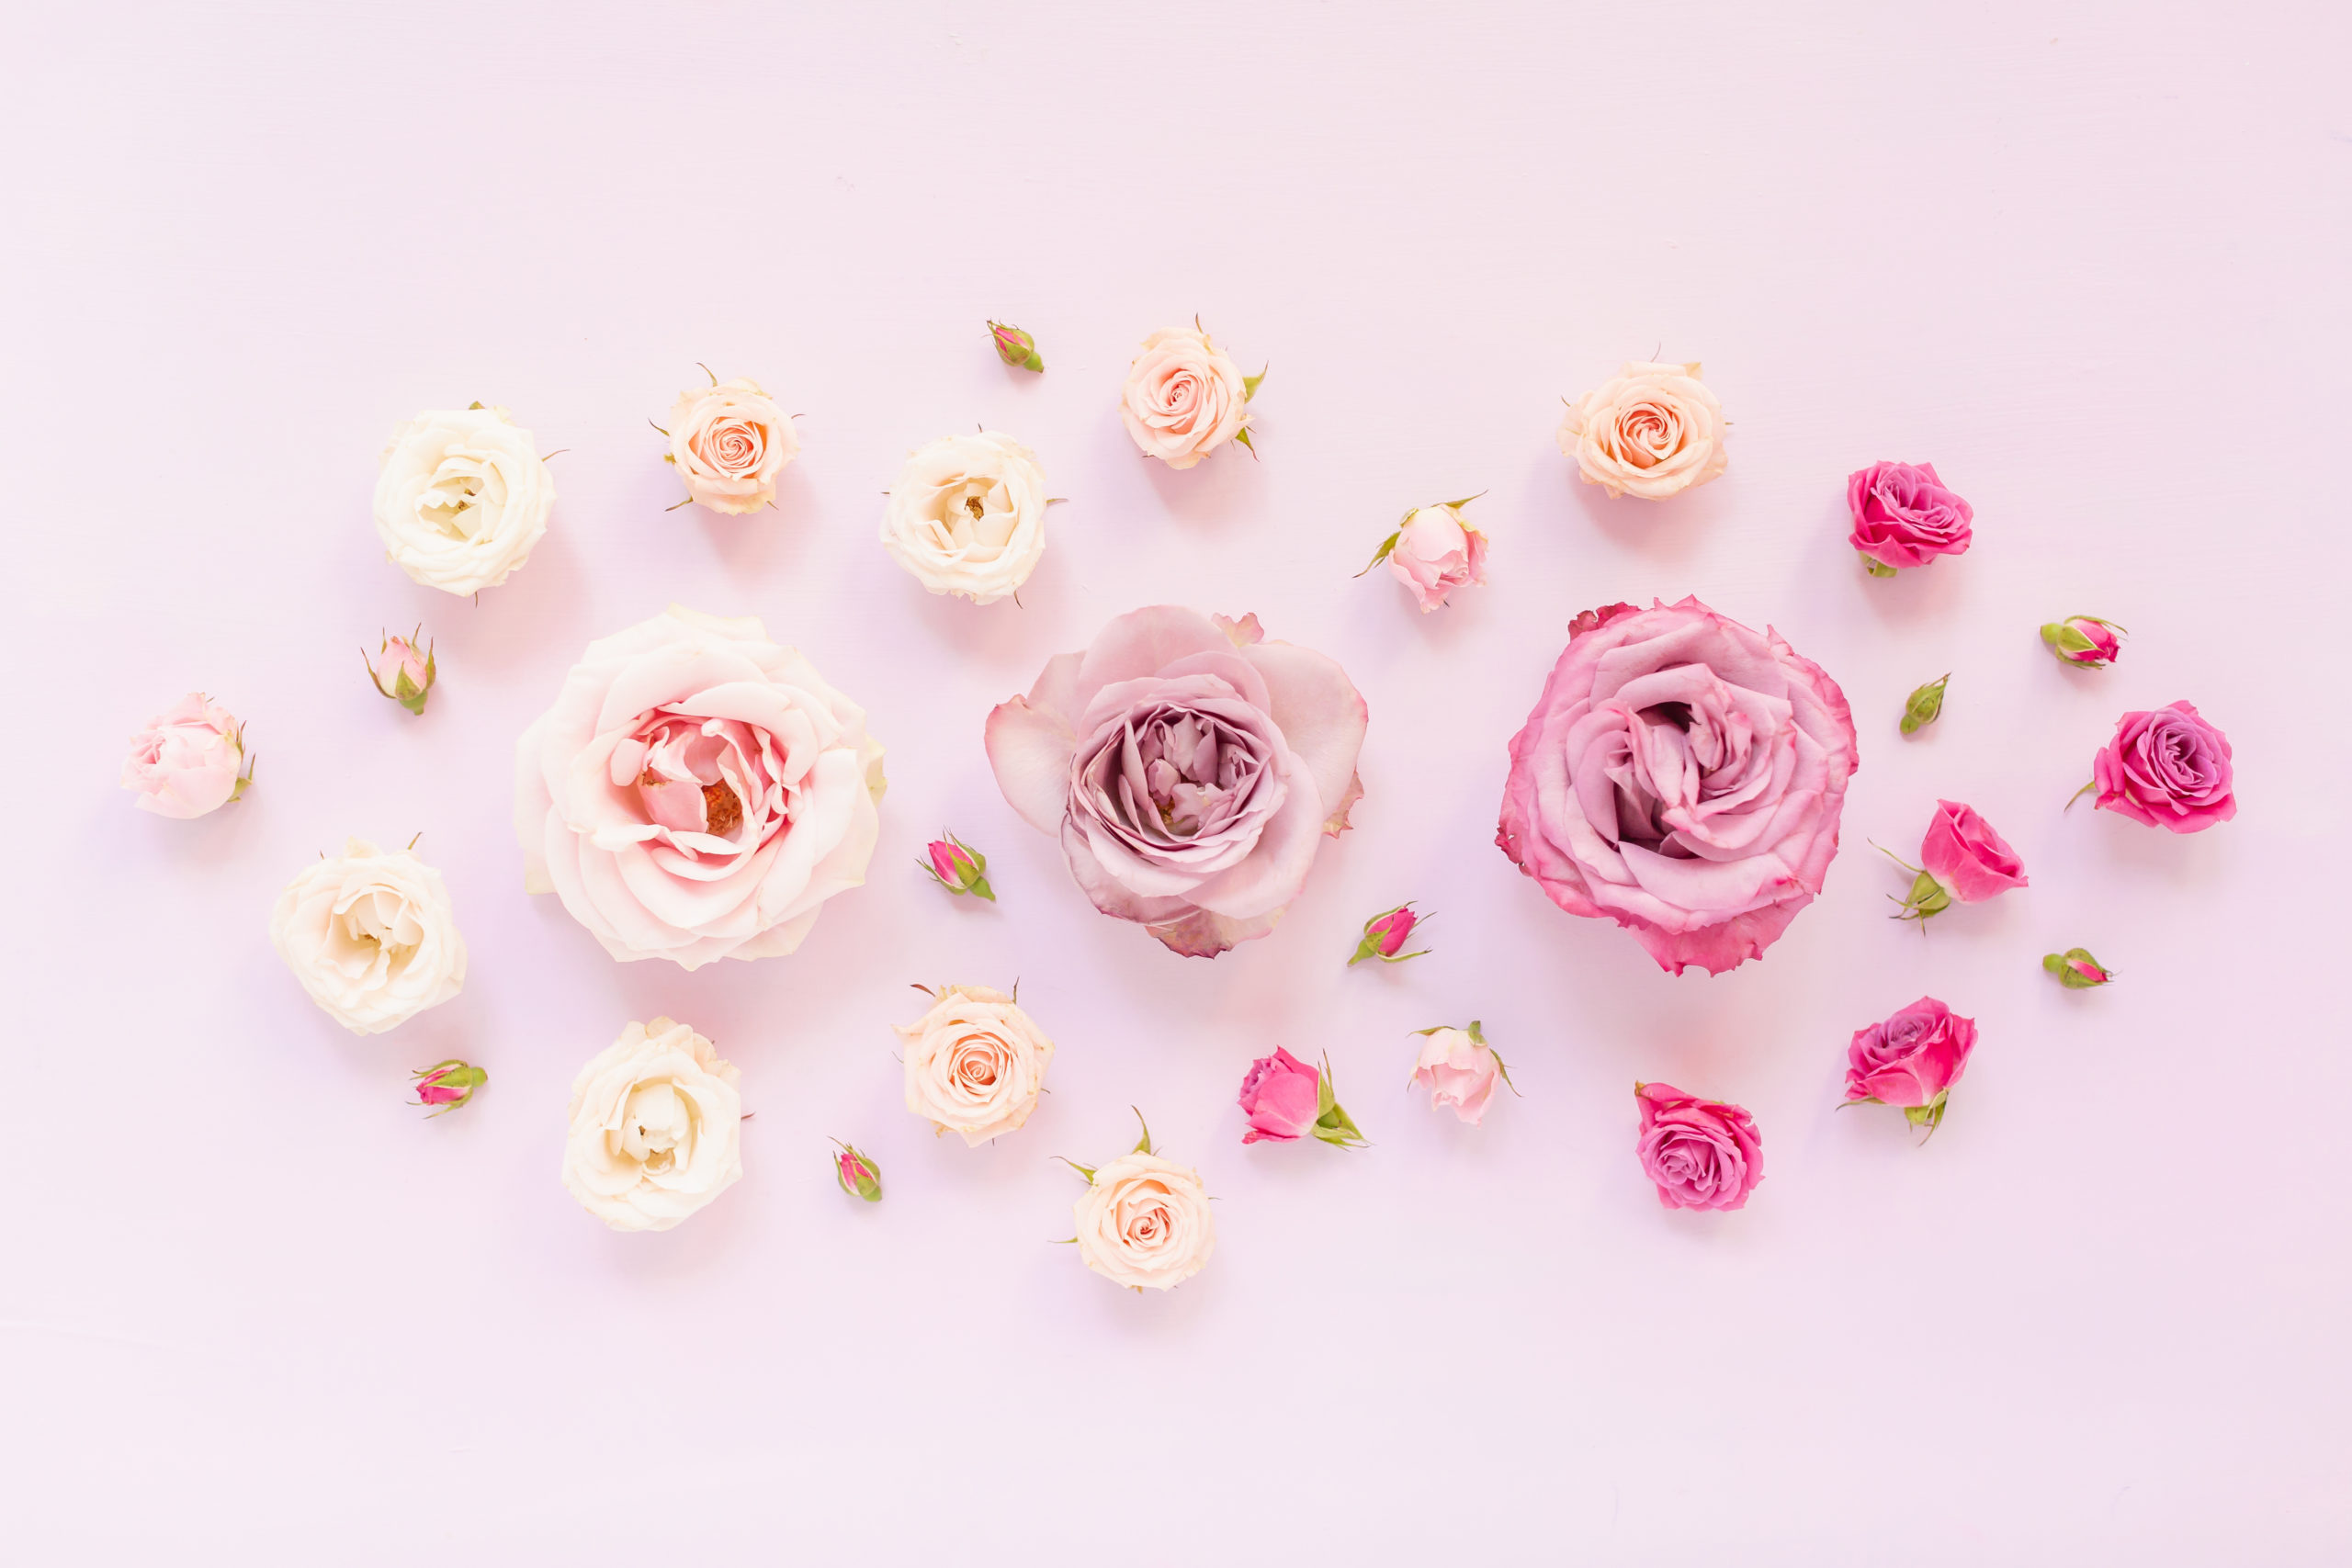 DIGITAL BLOOMS MARCH 2020 | FREE DESKTOP WALLPAPER | A soft, feminine, pastel rose FREE Desktop Wallpaper for Spring 2020 | Pink and Lavender Floral Tech Wallpaper for Spring | Pastel Pink FREE tech wallpaper Spring 2020 | Free March Flower Tech Wallpapers | JustineCelina Spring 2020 Digital Blooms | Free March 2020 Floral Desktop Wallpaper featuring Purple Haze Lavender Roses, Amnesia Lavender Novelty Roses, Mother of Pearl Roses and Spray Roses // JustineCelina.com